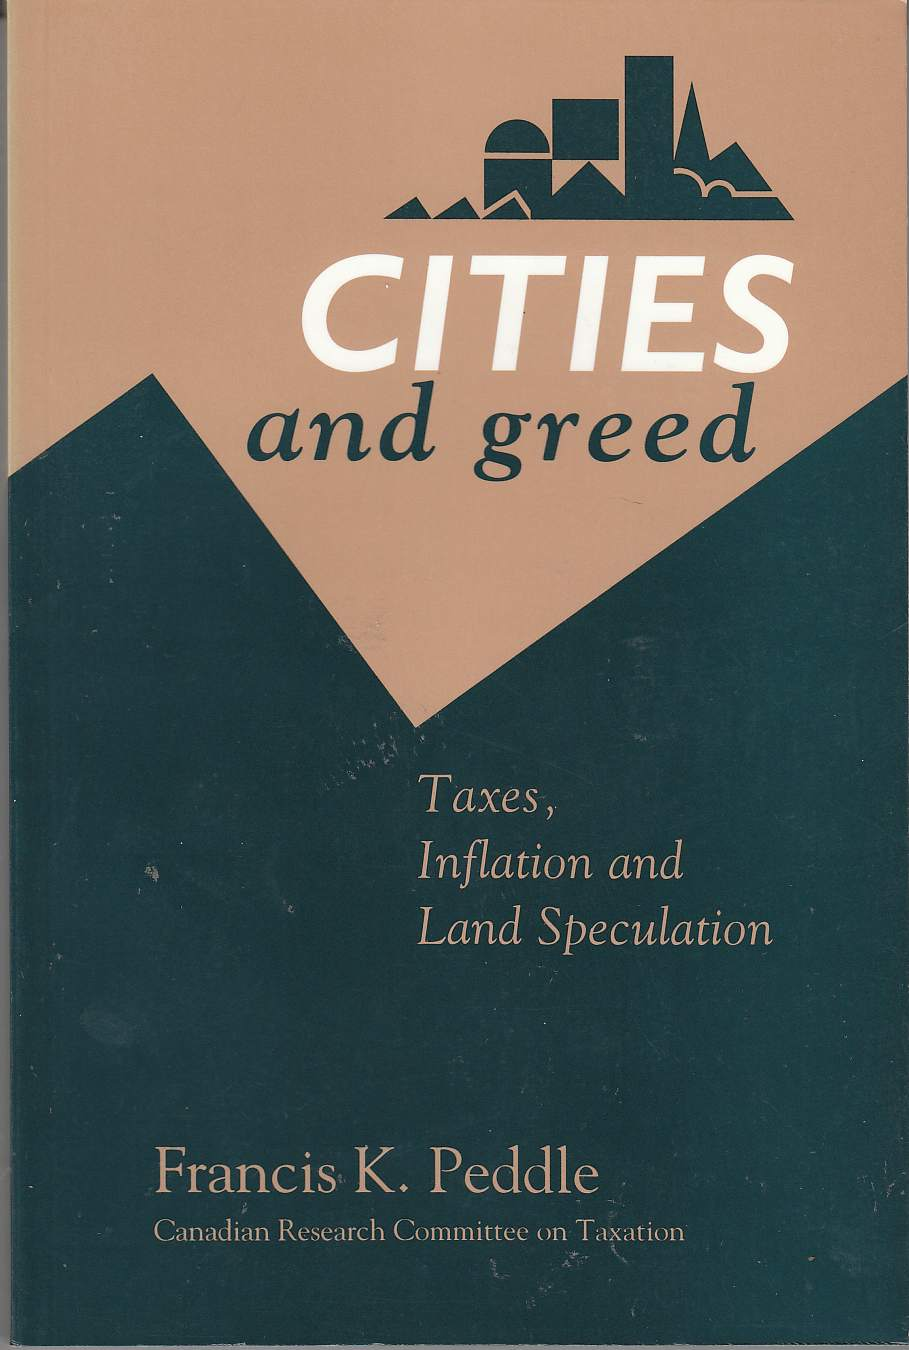 Image for Cities and Greed Taxes, Inflation and Land Speculation